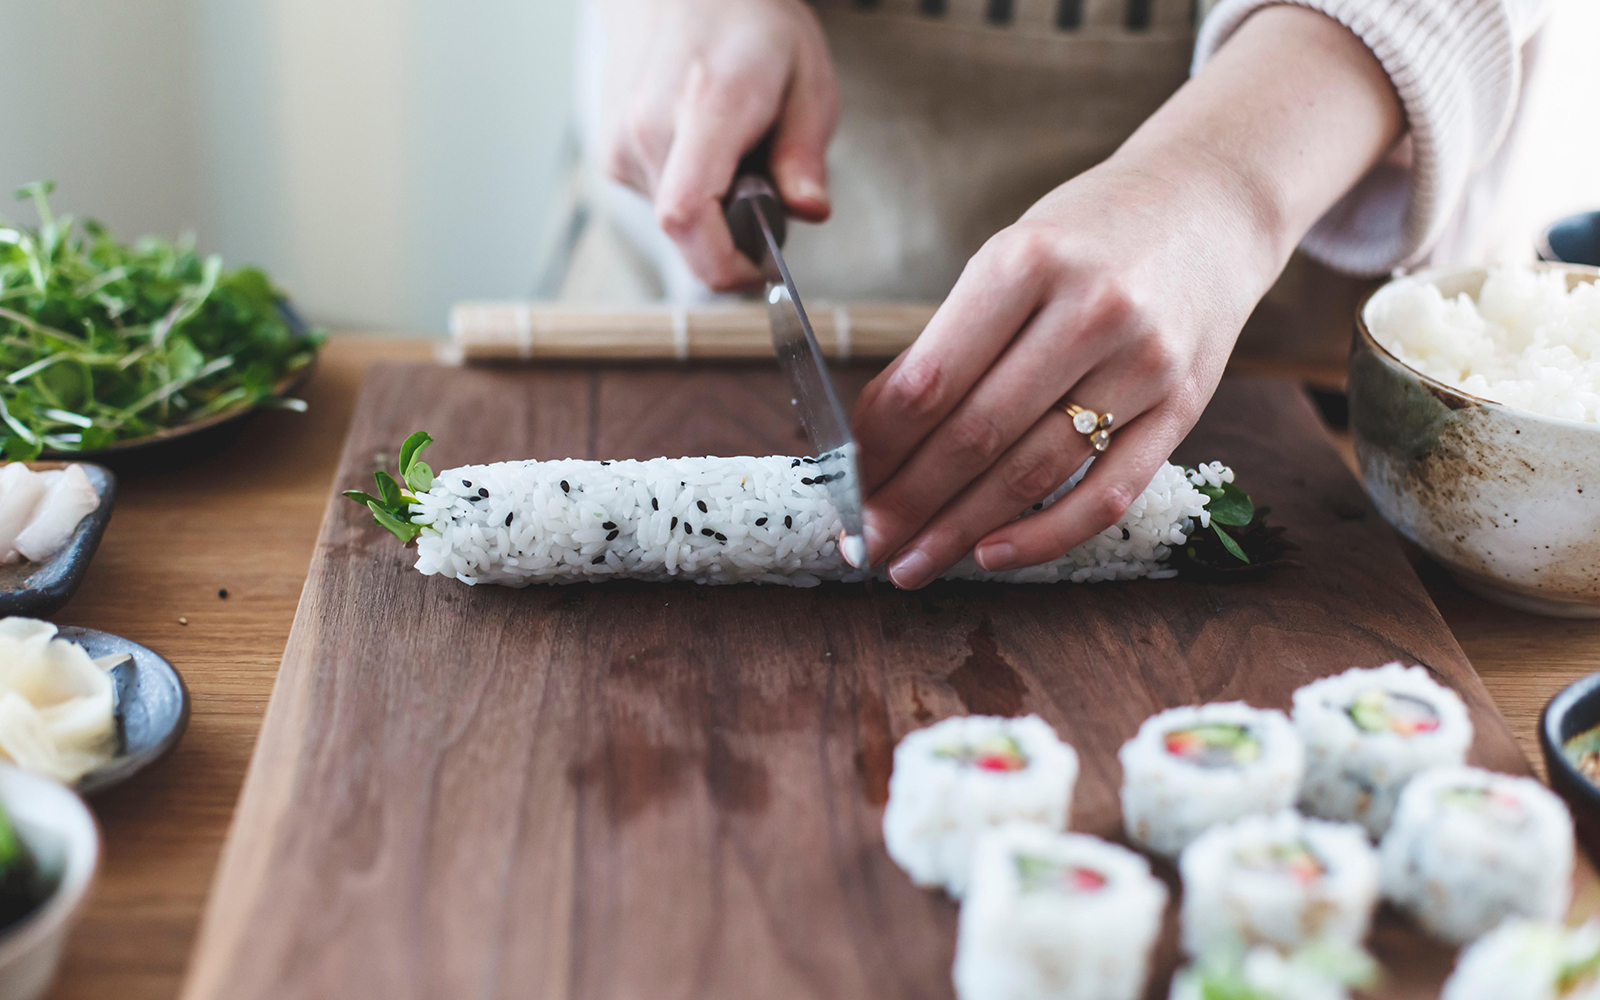 Japanese Chef Opens All-Female Sushi Restaurant to Fight Sexism